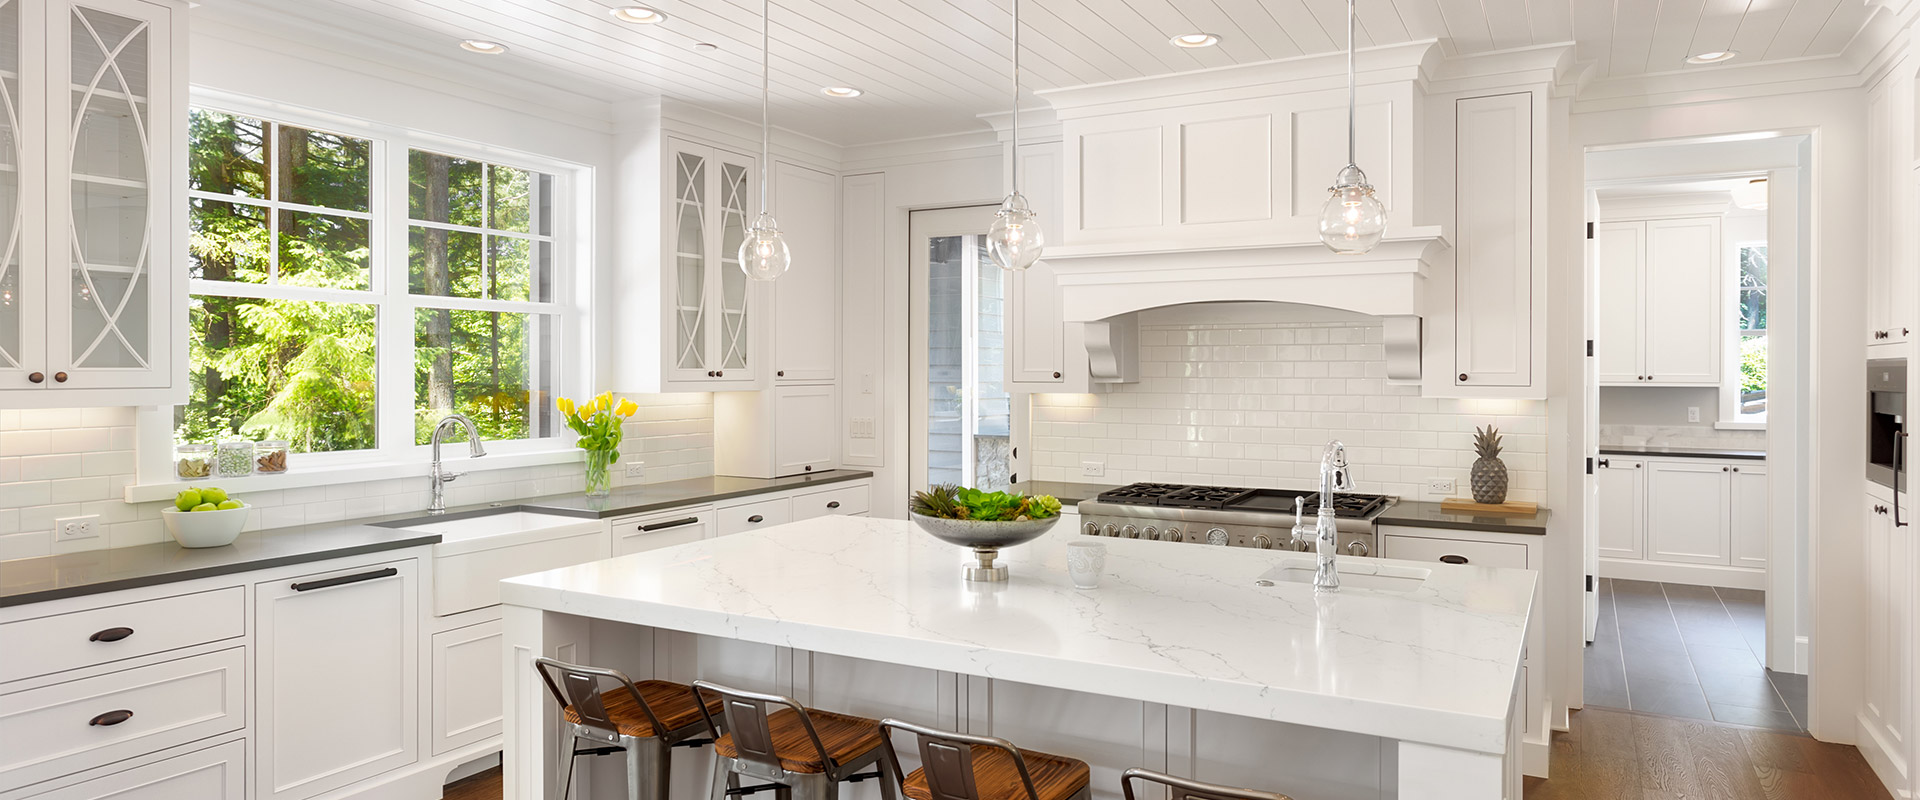 Home Kitchen & Bathroom Remodeling San Diego Specialty Home